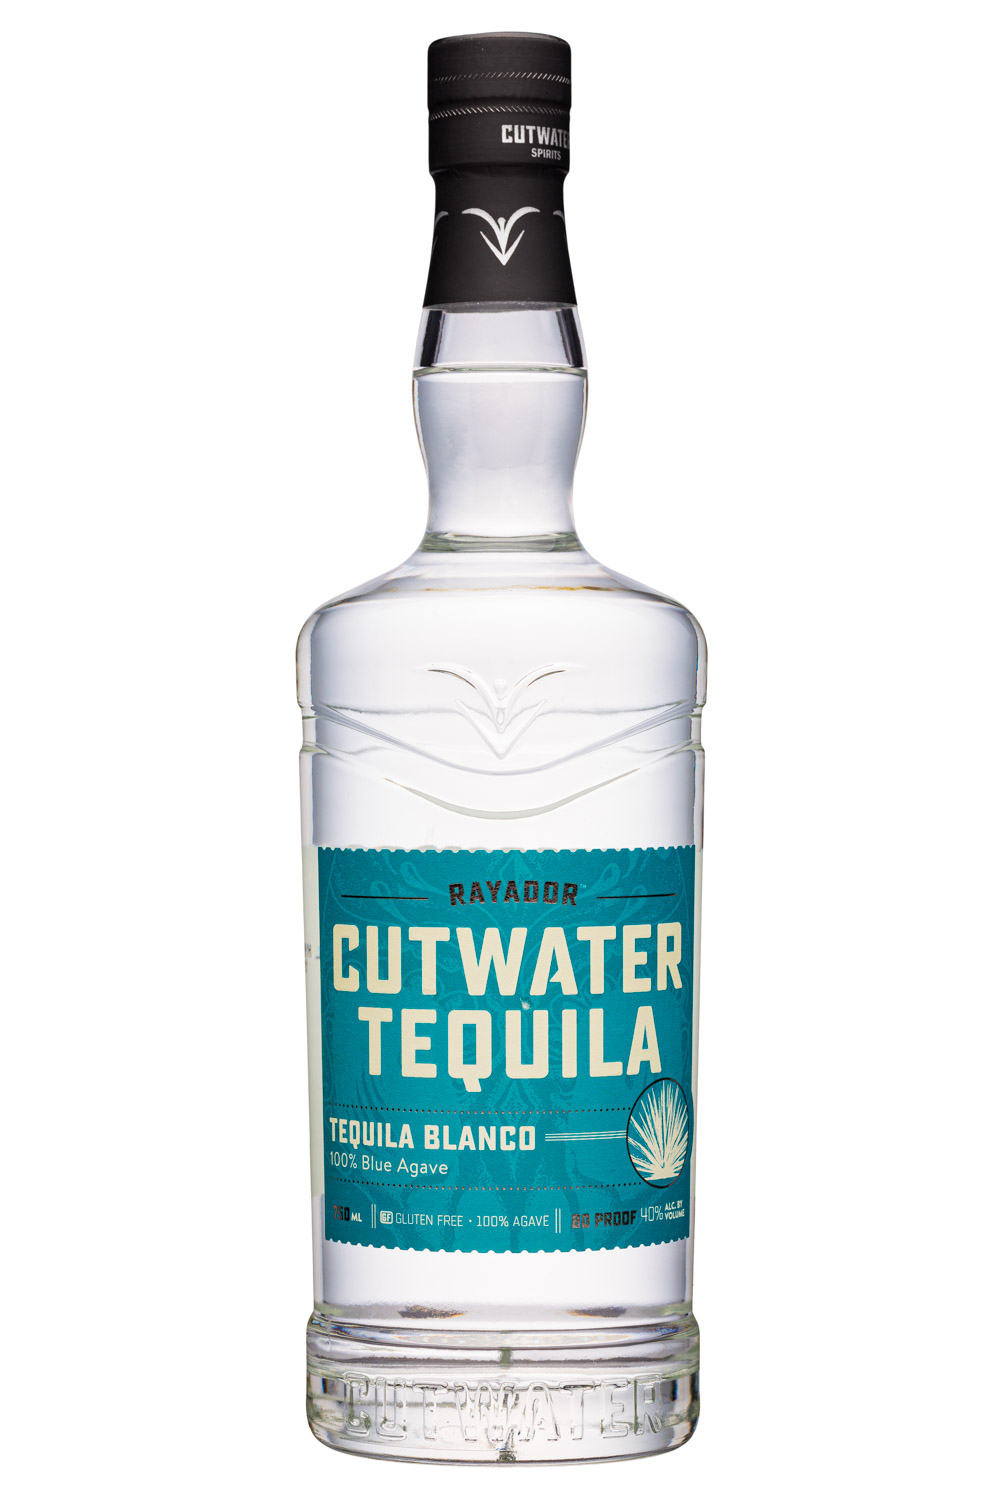 Cutwater Tequila